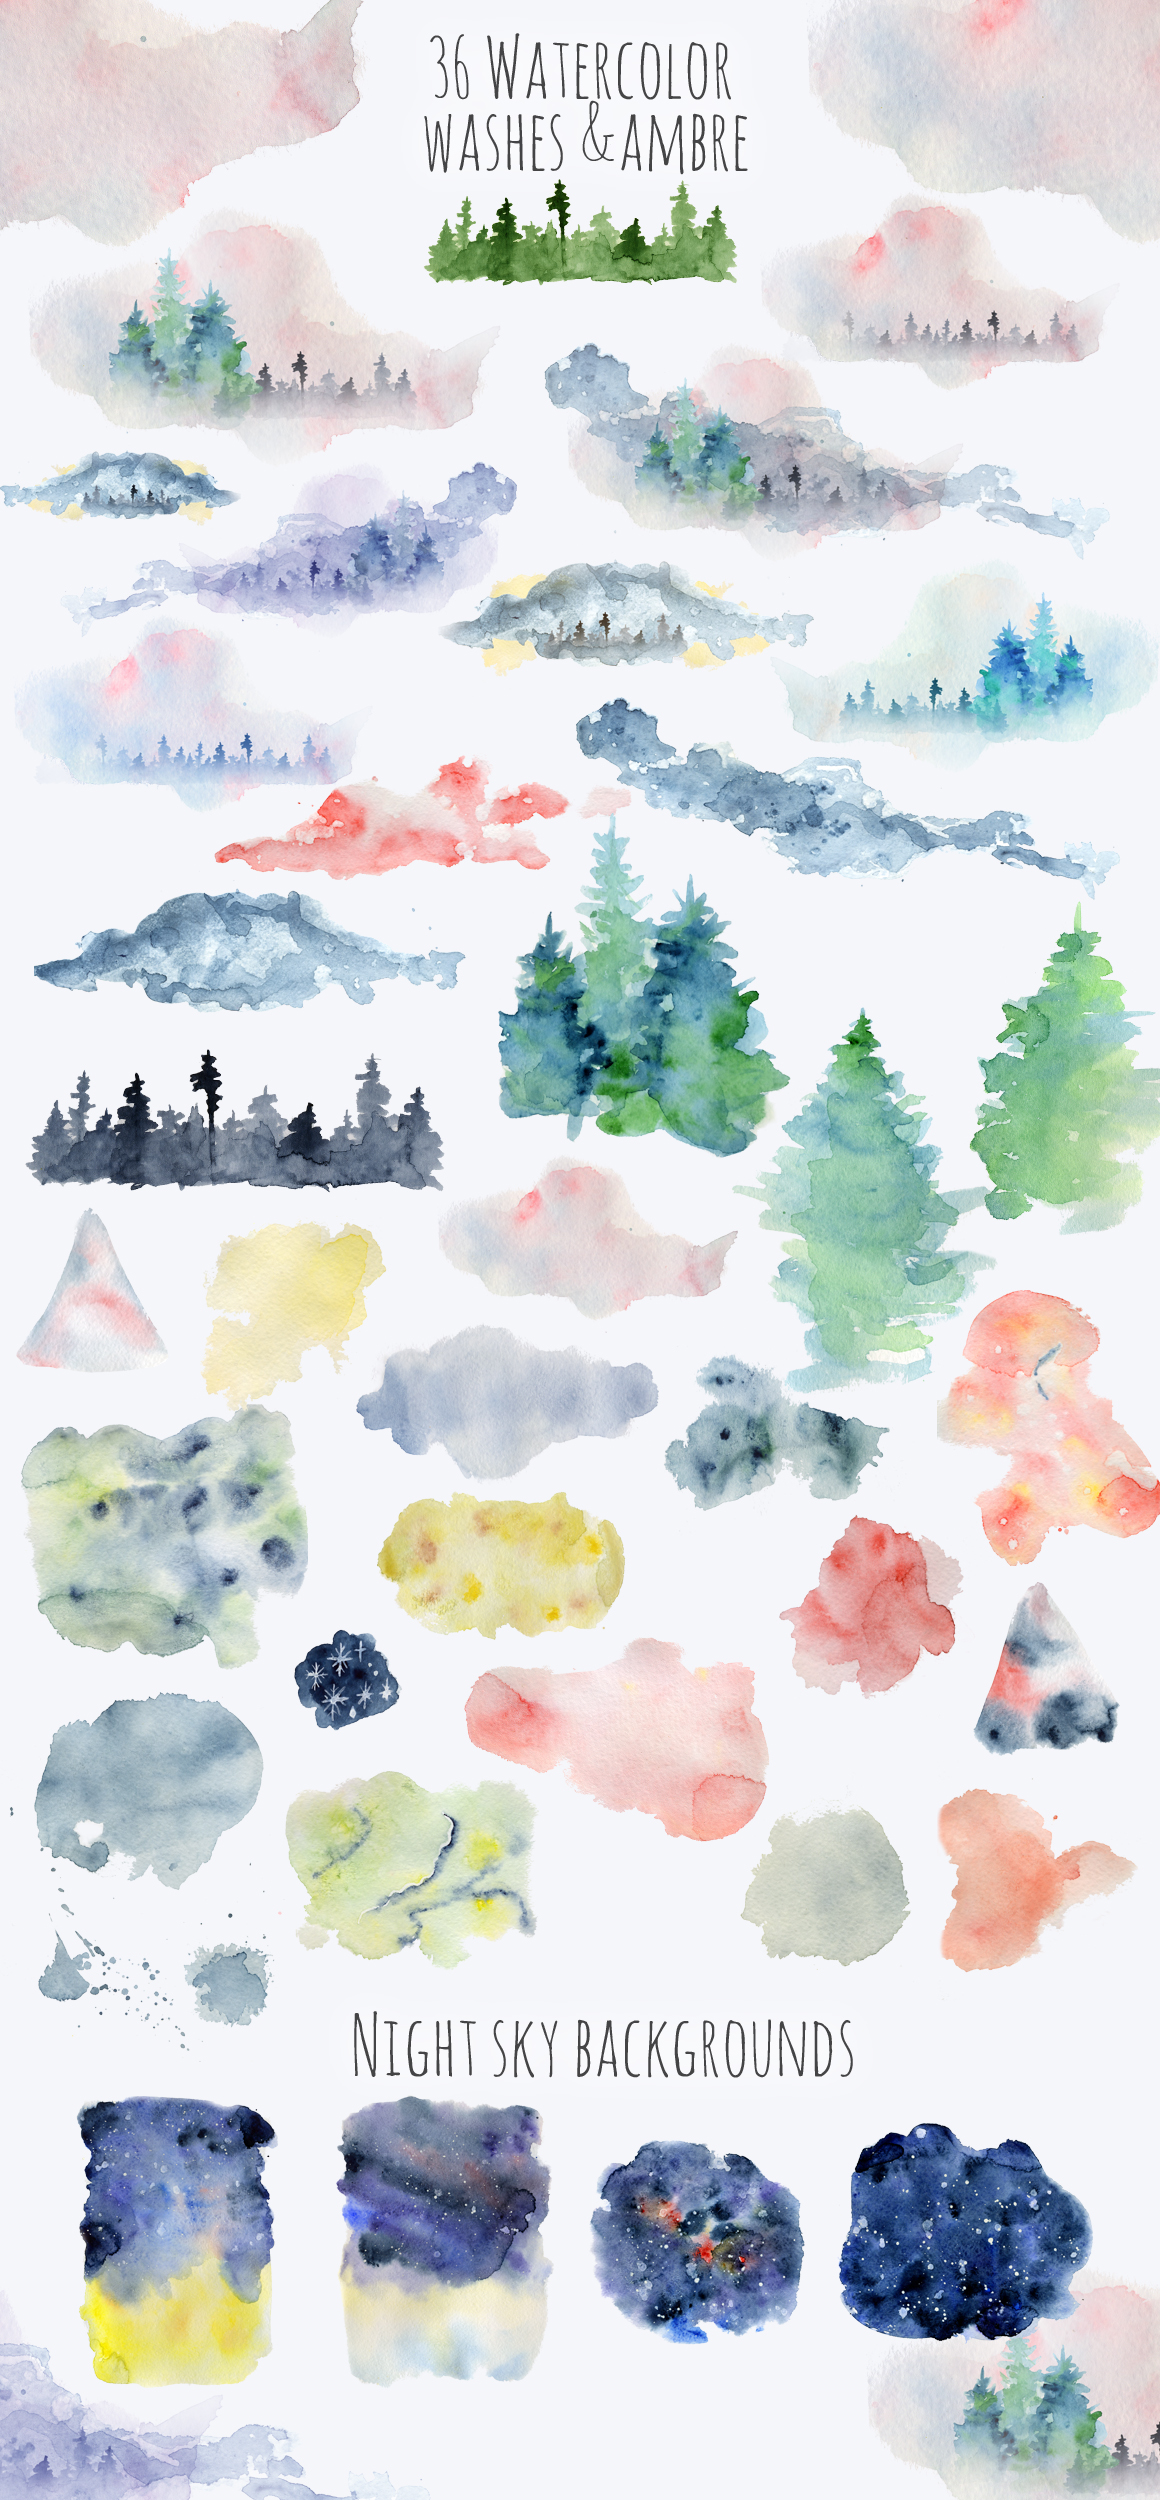 Magical Winter Clipart: 14 Christmas Watercolor Clipart Bundles in 1 - $28 - 16 Ambre